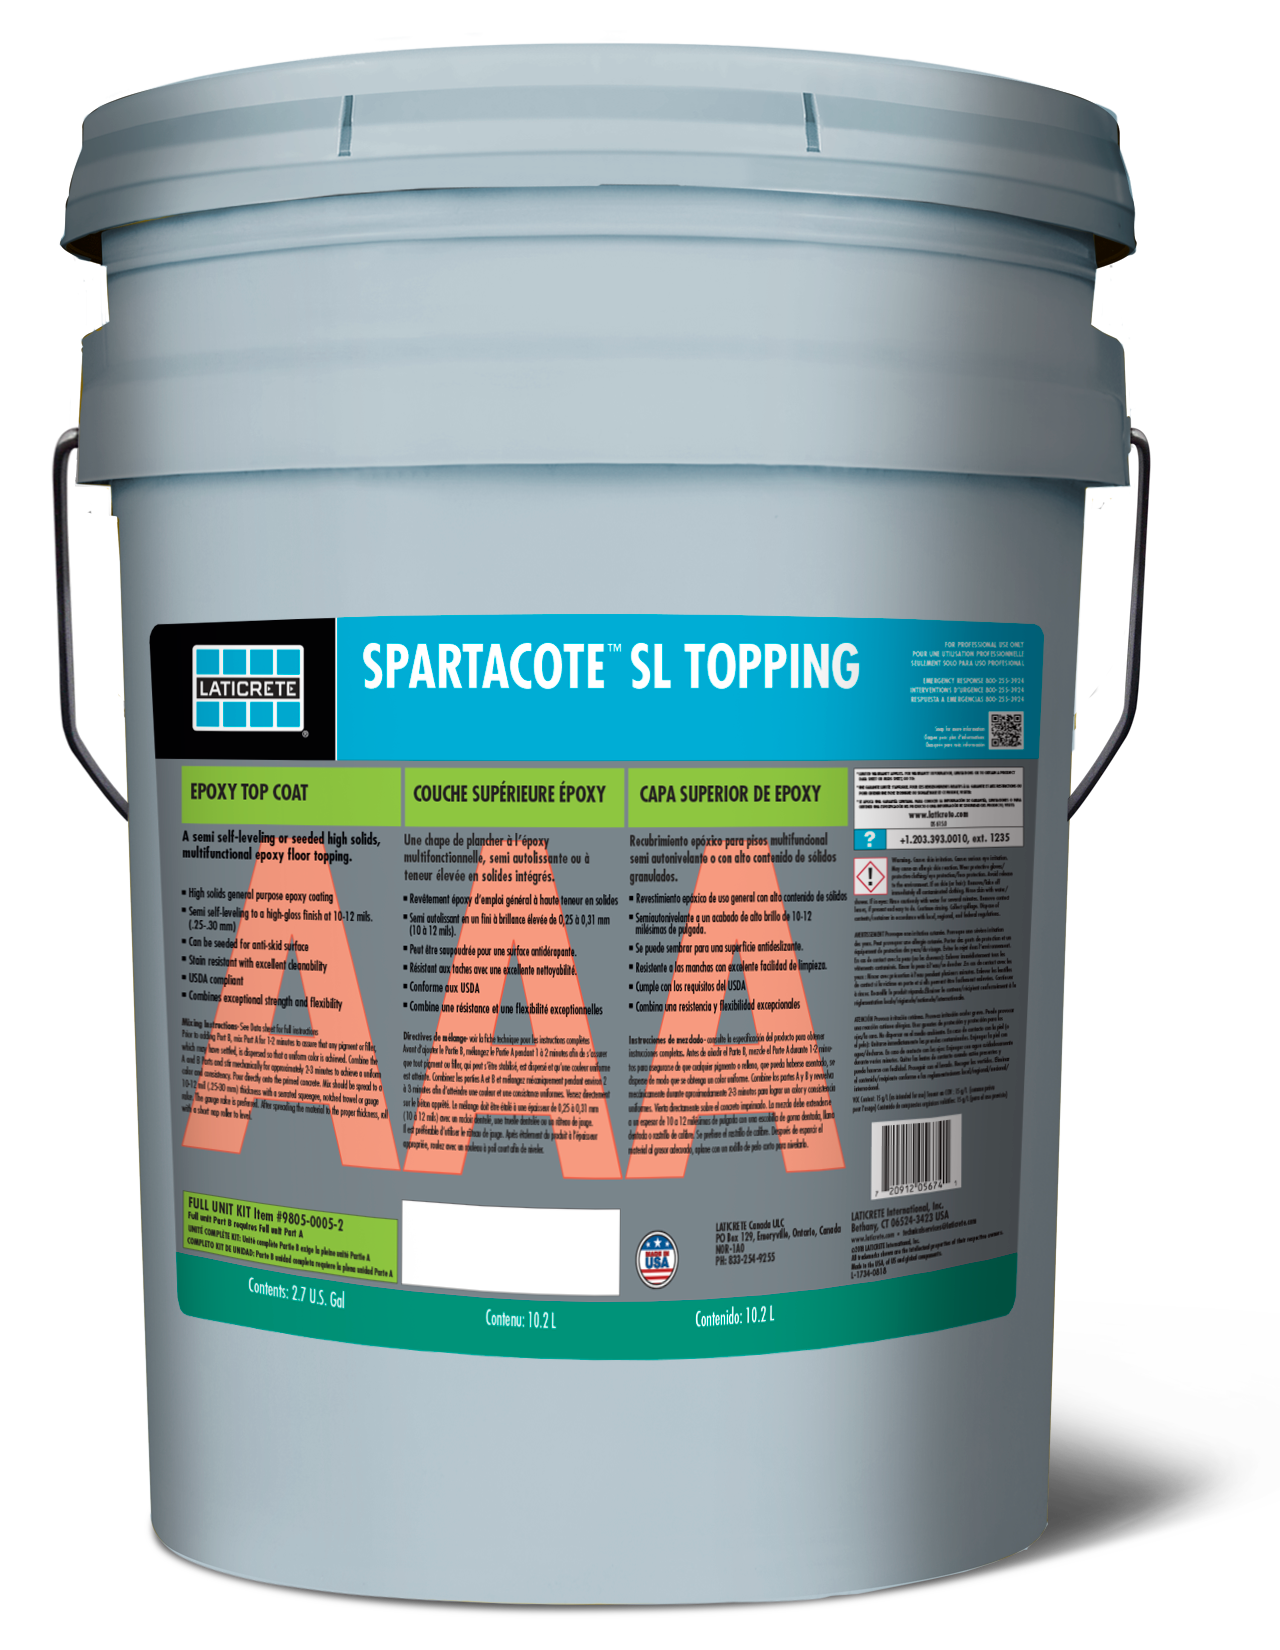 SPARTACOTE SL Topping